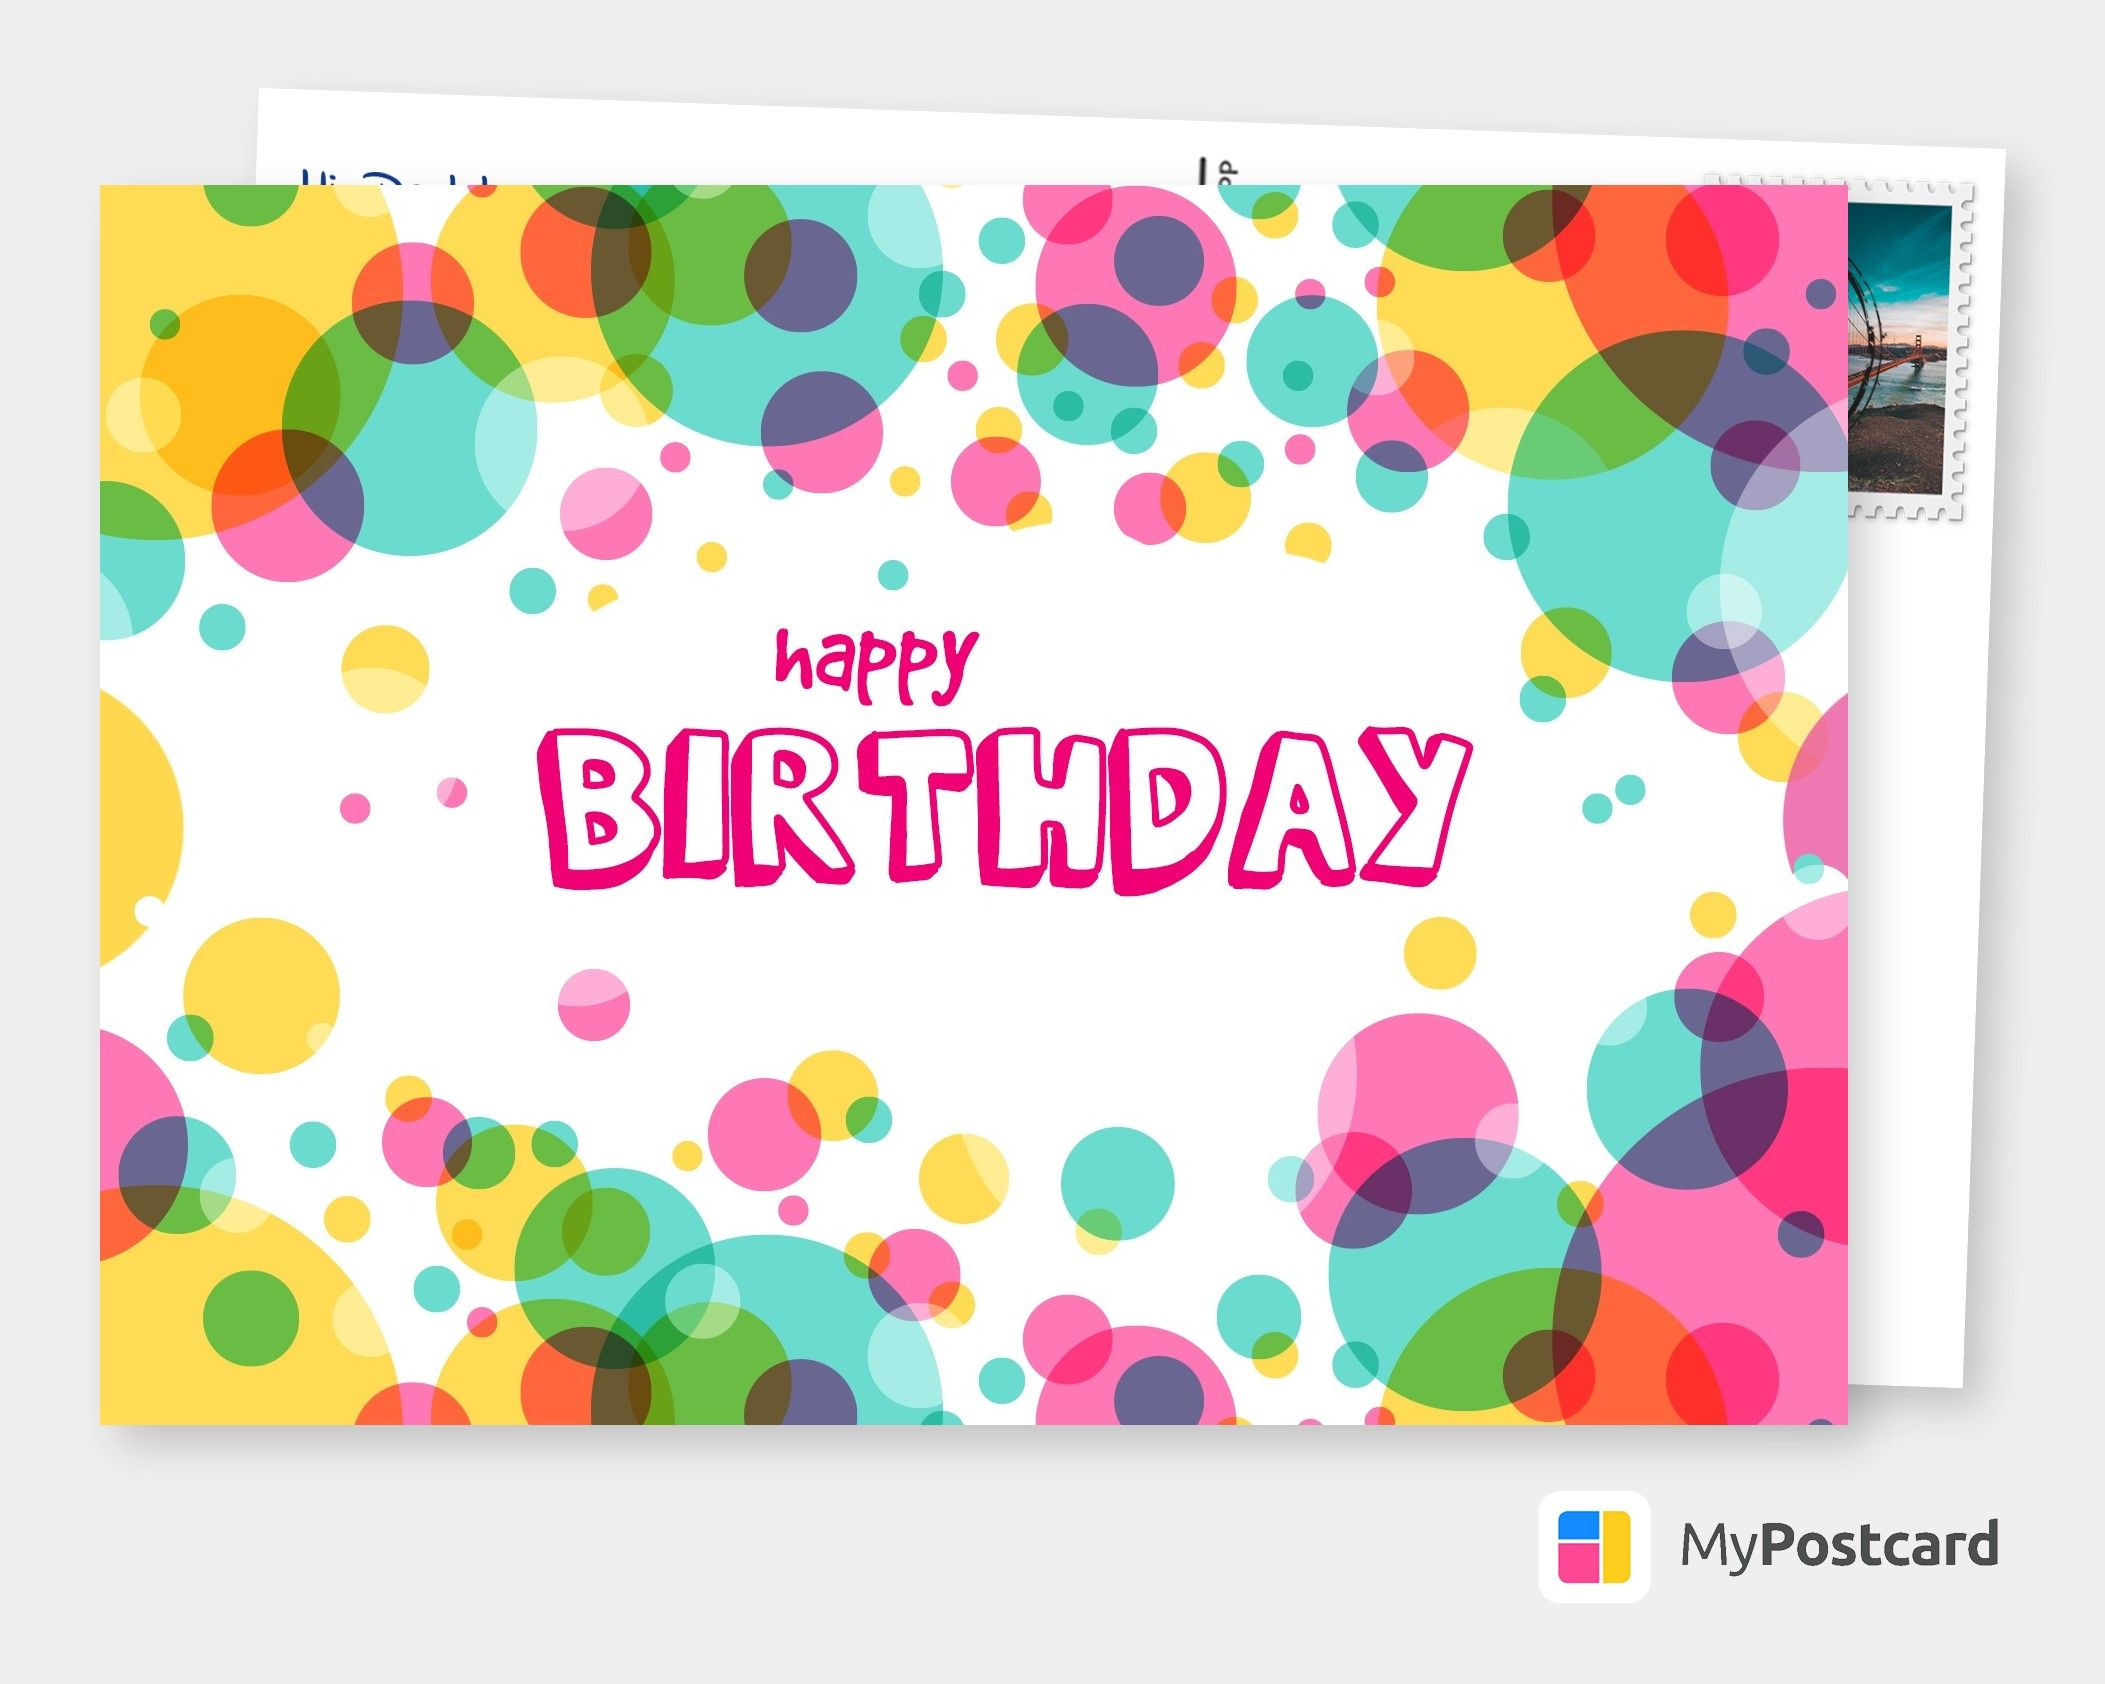 Send Birthday Cards Online To Canada, US, UK